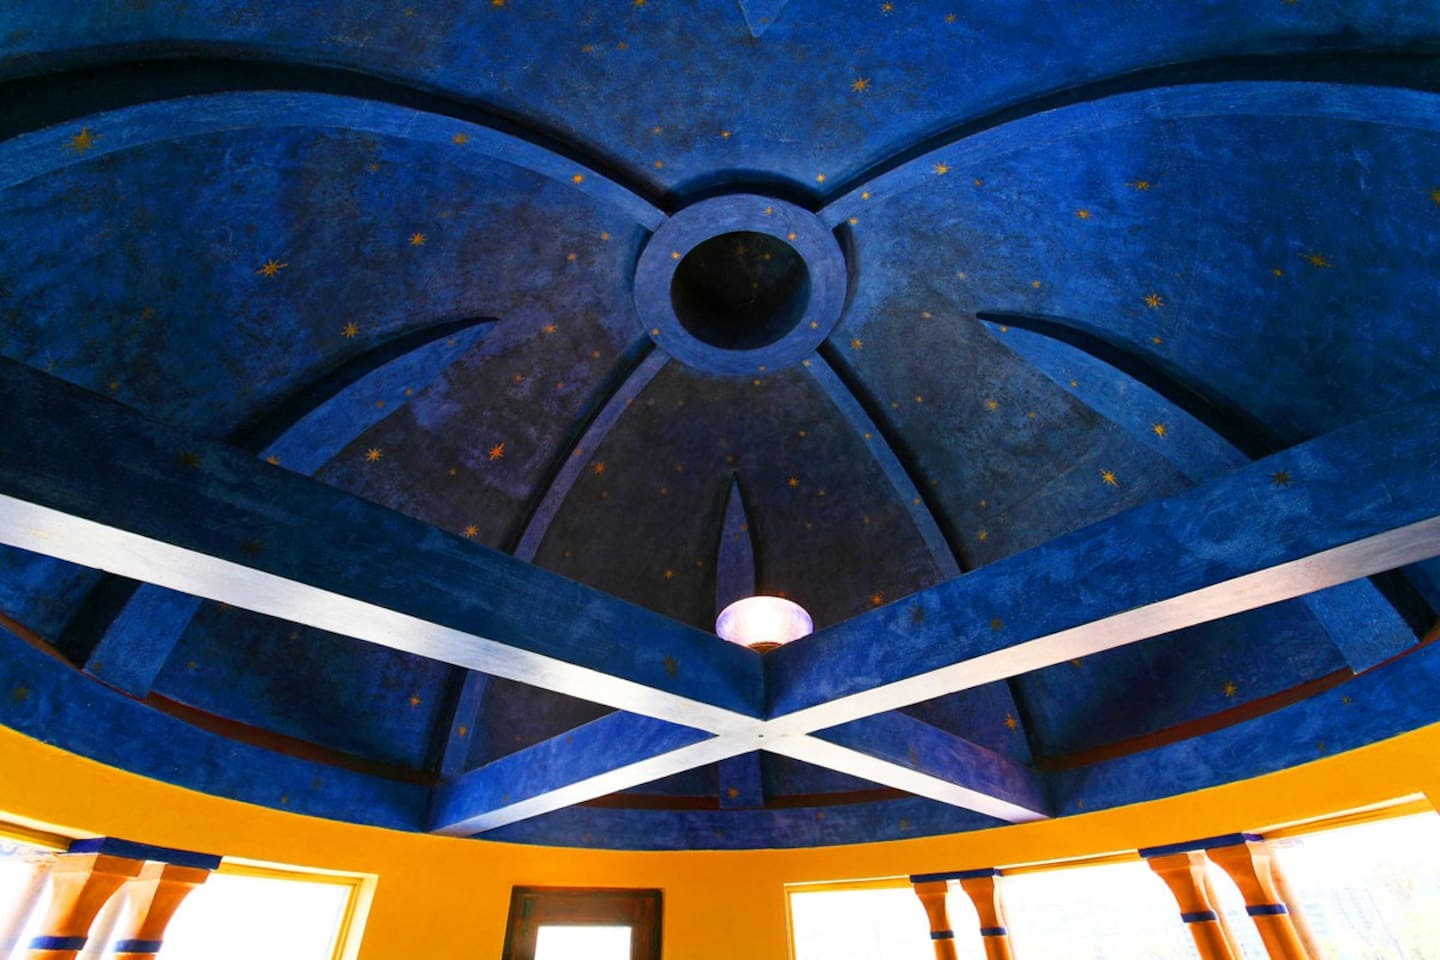 Under the blue (main) dome.